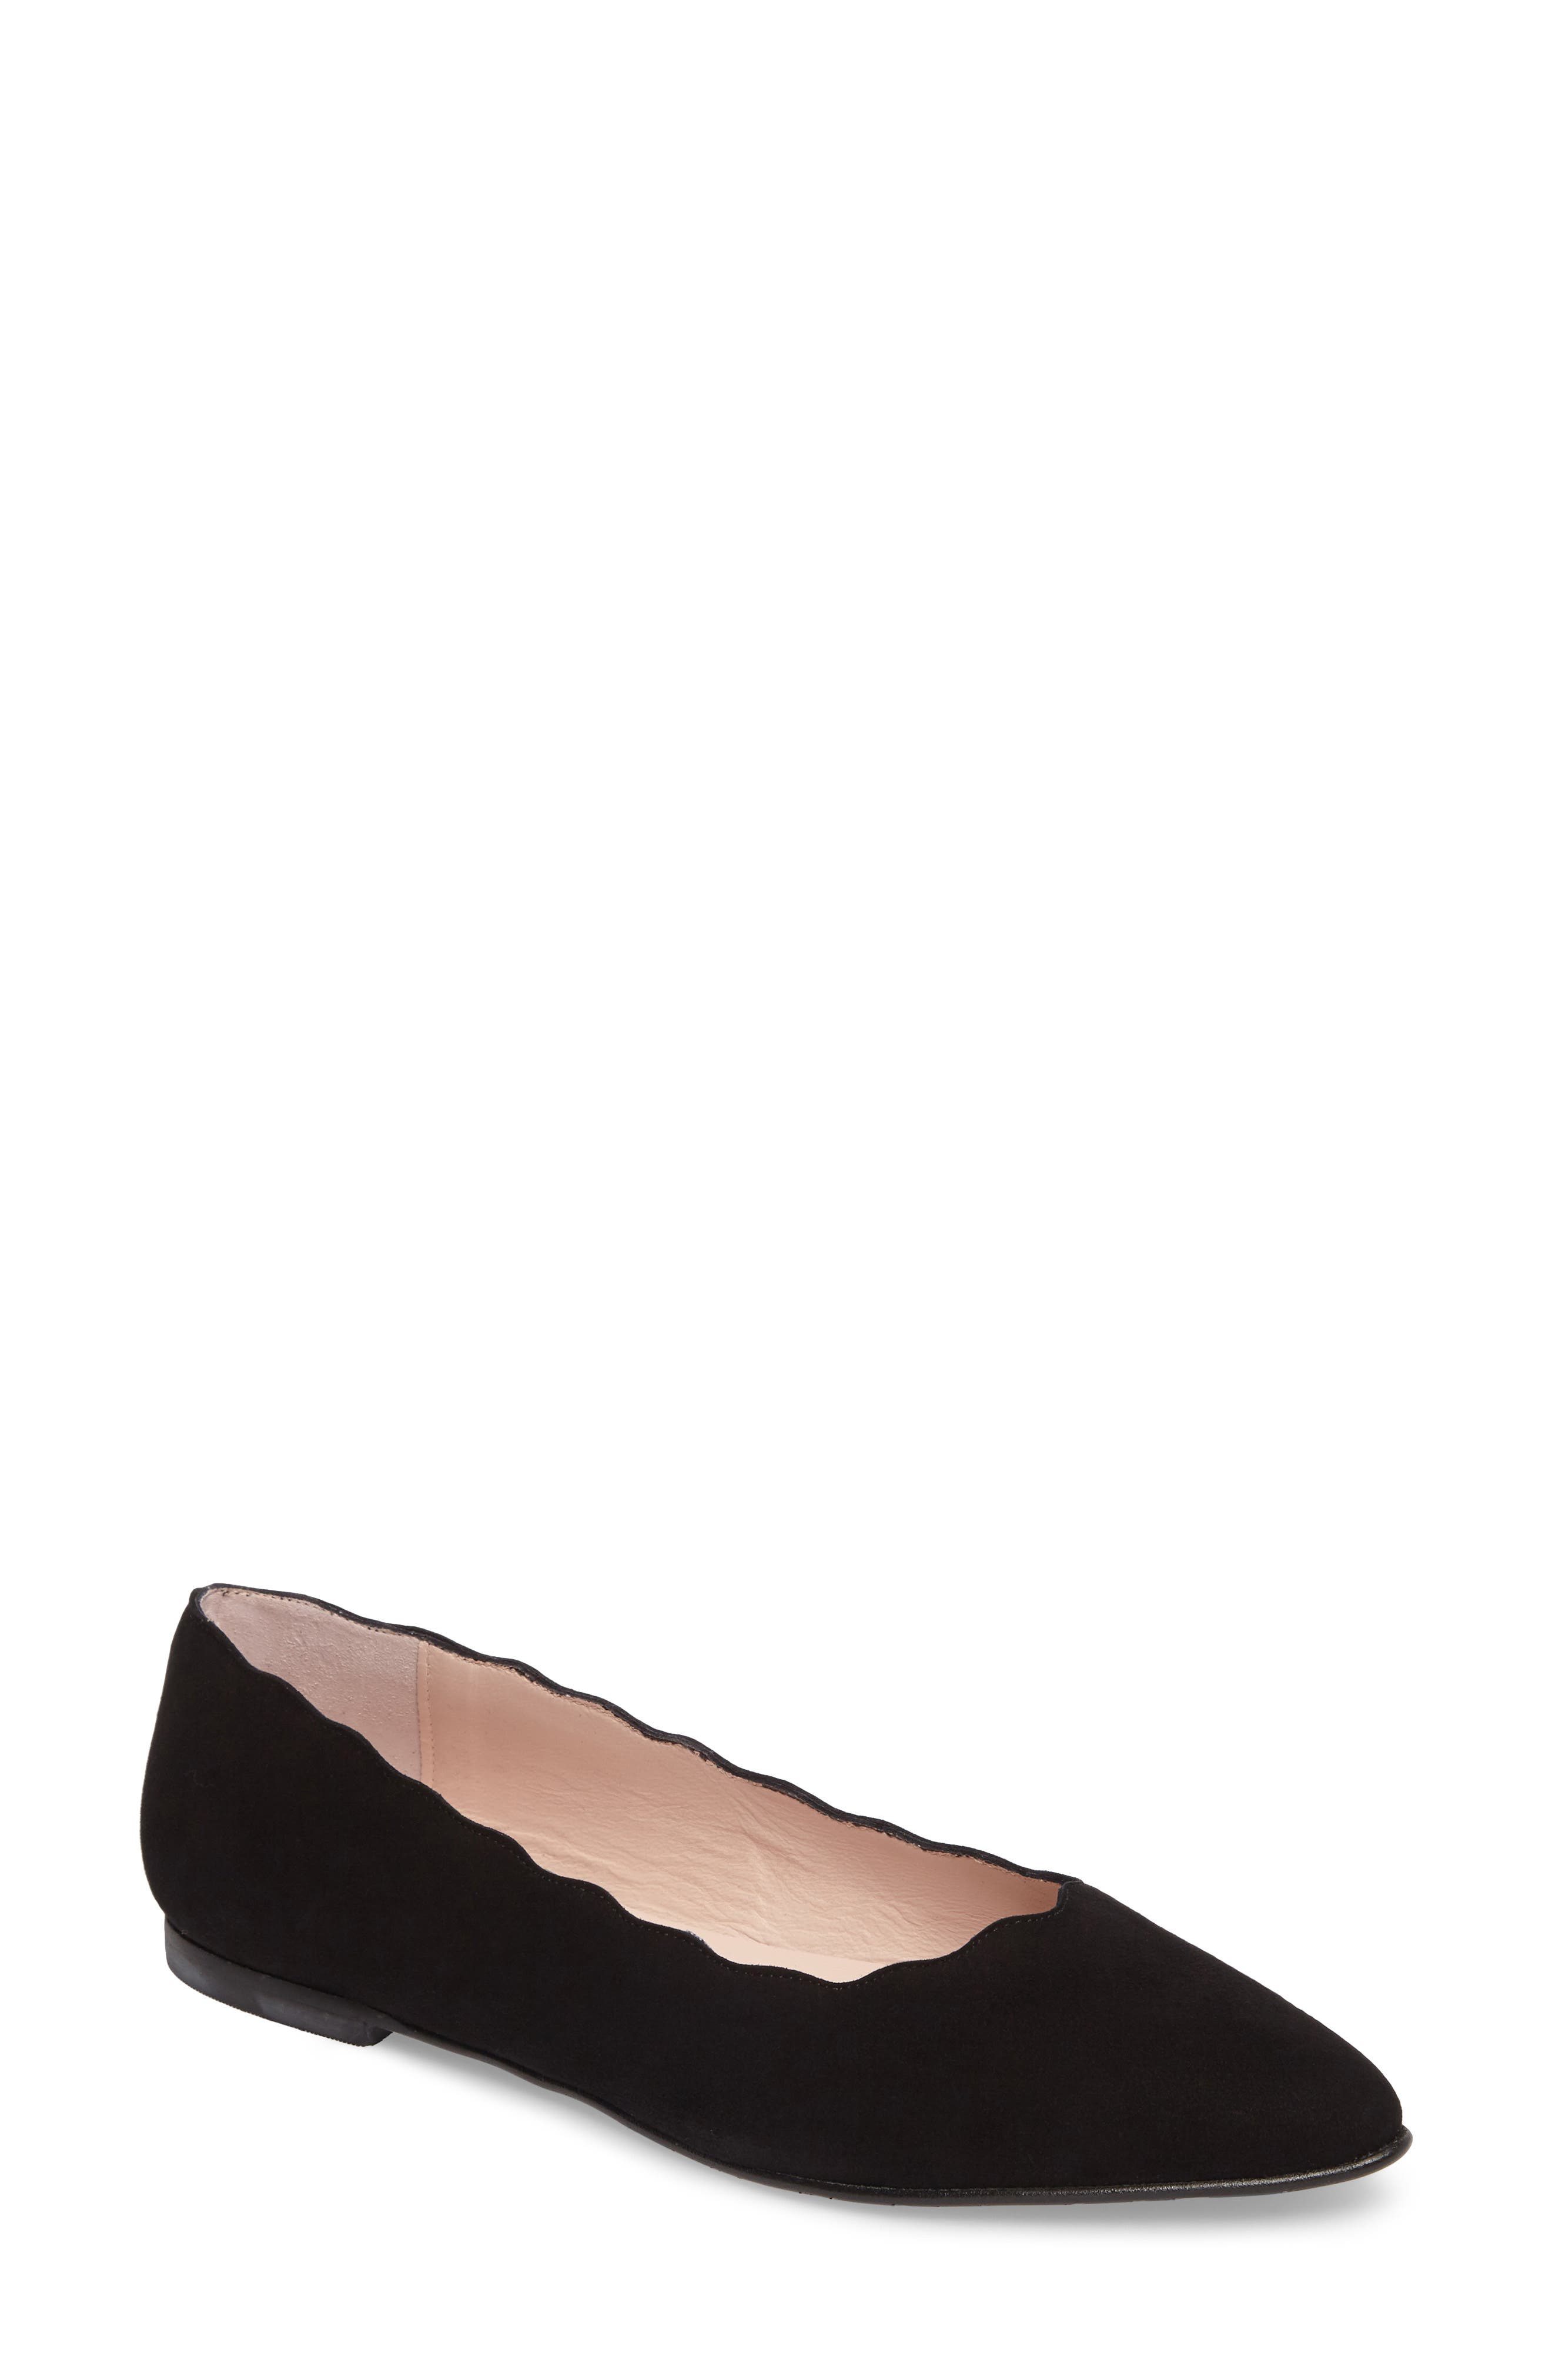 Alternate Image 1 Selected - patricia green Scallop Flat (Women)